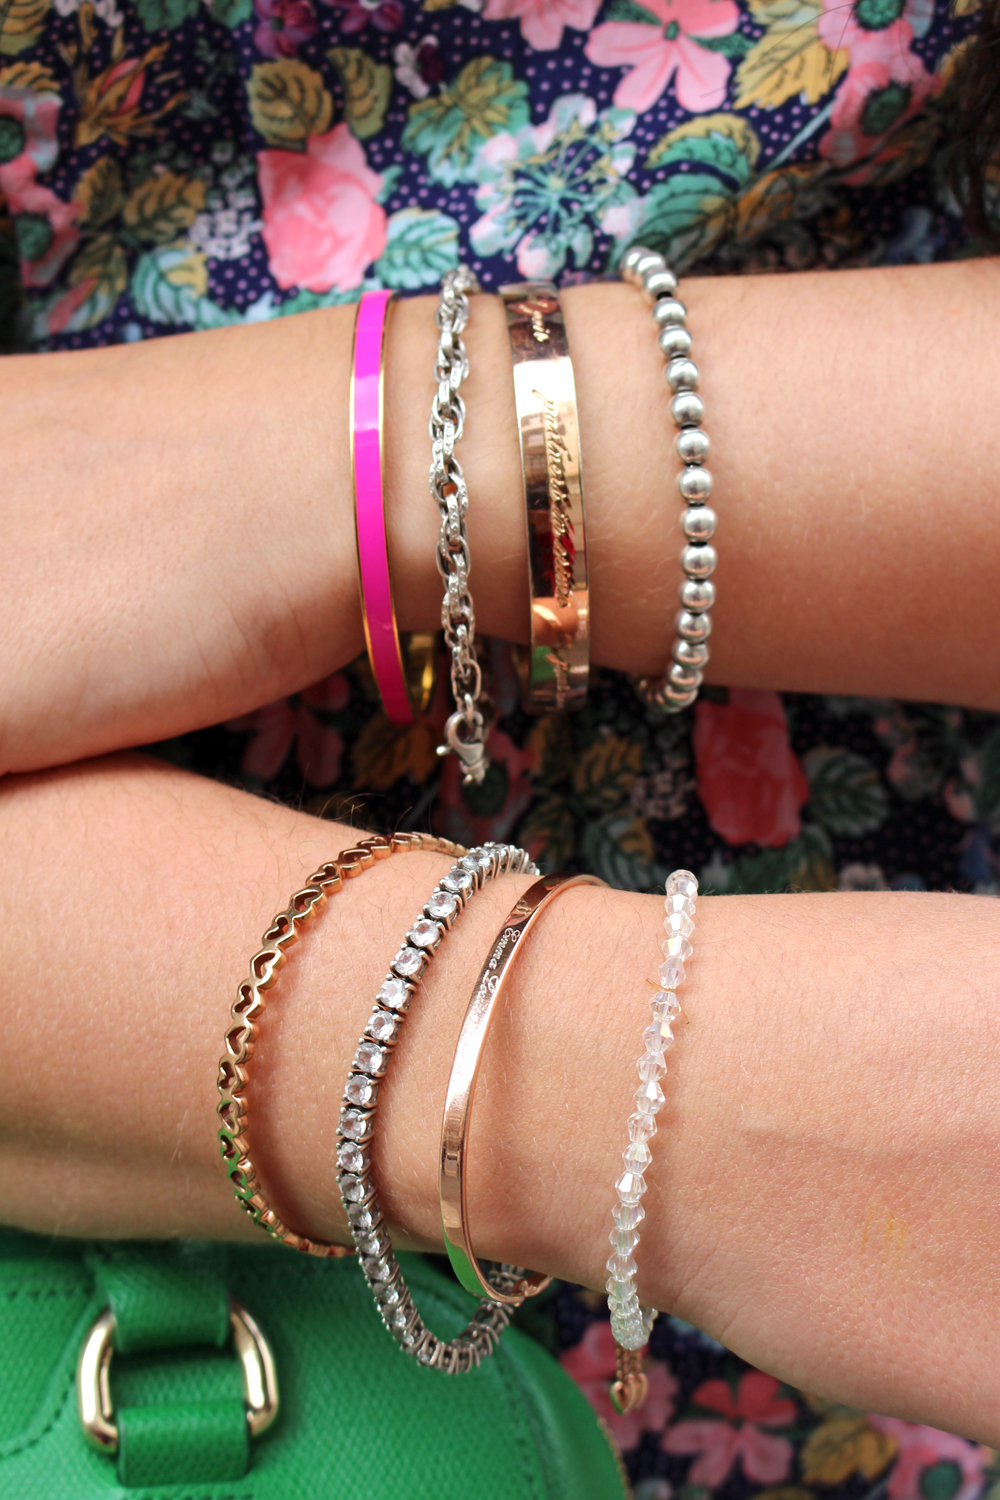 Mixed Monica Vinadier, Kate Spade & Follie Follie bracelets - London fashion blogger